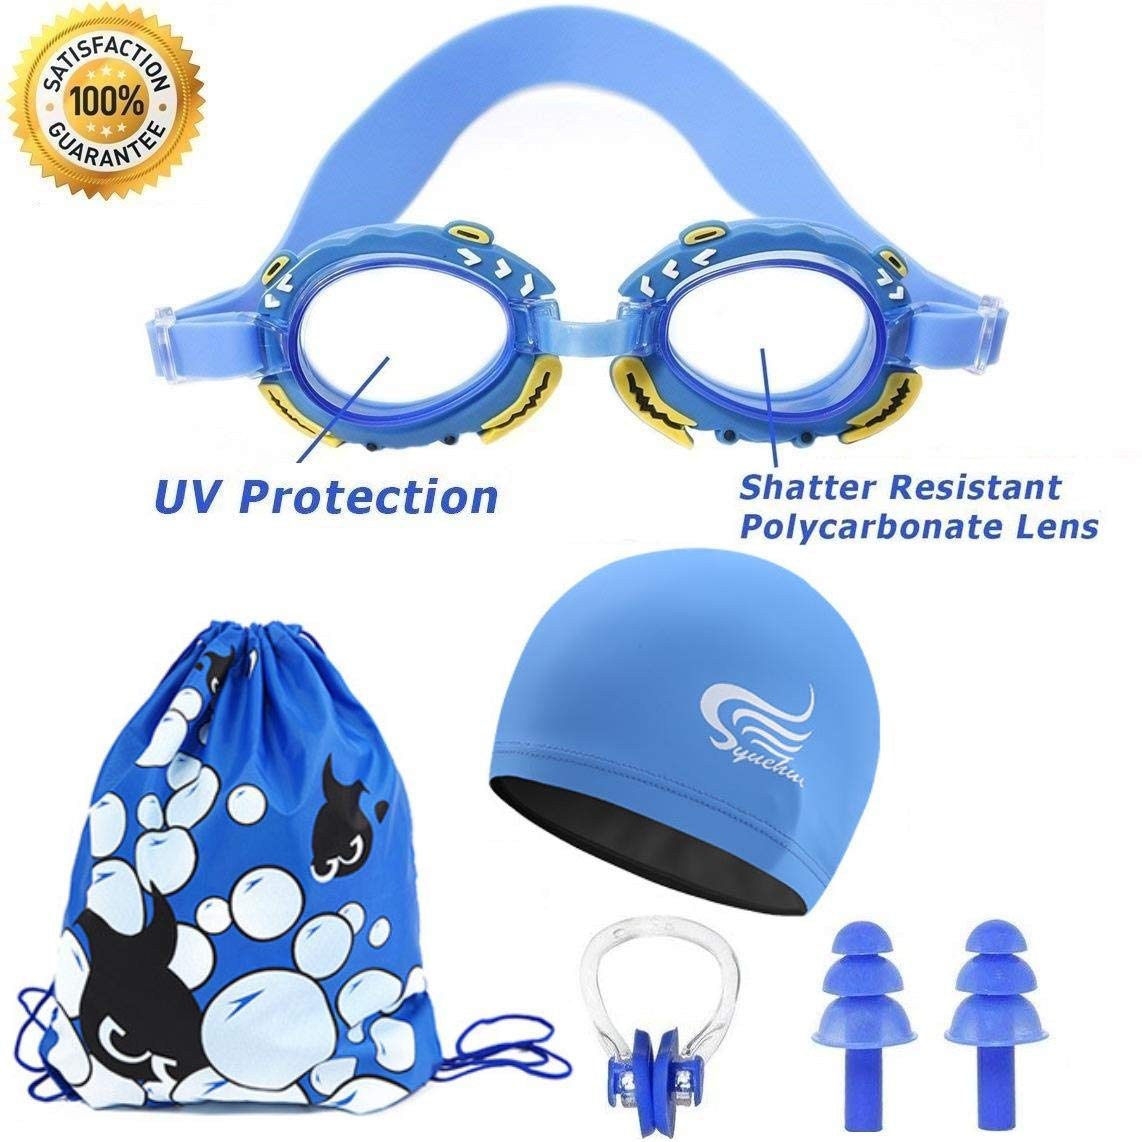 Swim Goggles For Kids | Mirrored Swimming Goggles No Leaking Anti Fog UV Protection - Free Protection Easy Adjustment With Cartoon Waterproof Swim Cap With Nose Clip, Ear Plugs and Carry Bag by Doc&Good Inc. (Image #7)